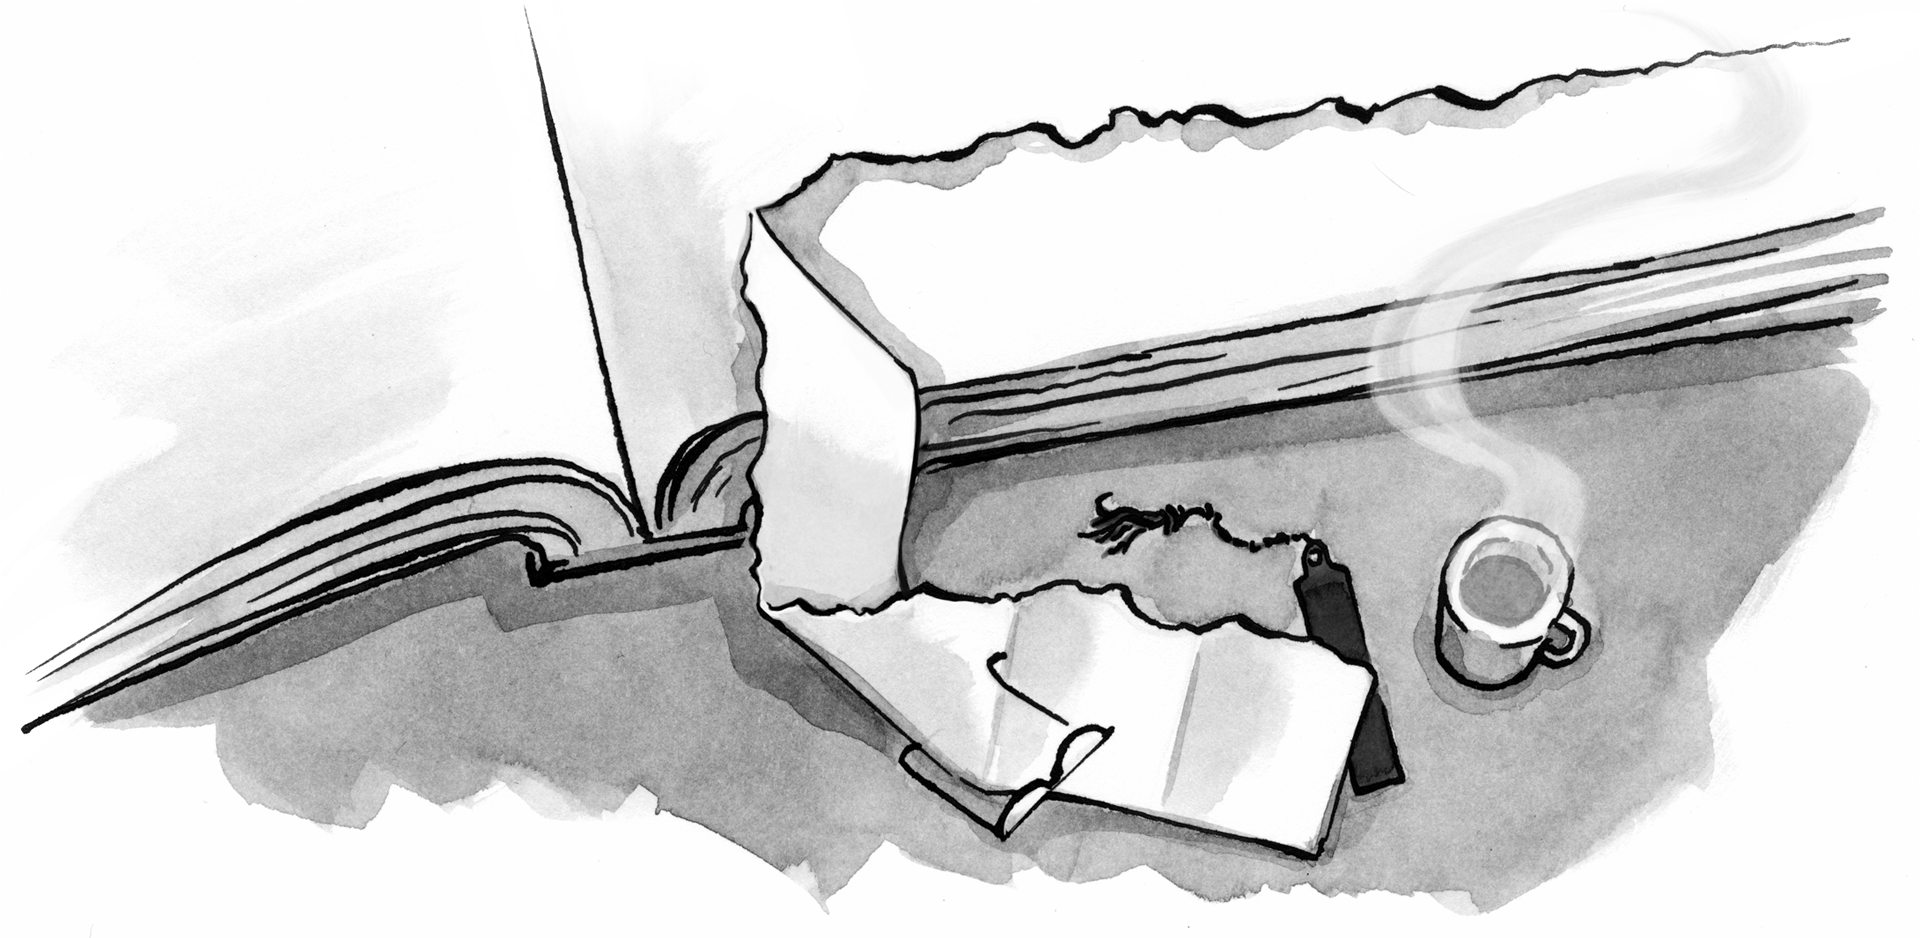 Illustration: A small piece of paper is torn from a very large book with some glasses, a bookmark, and a steaming mug of something delicious nearby.